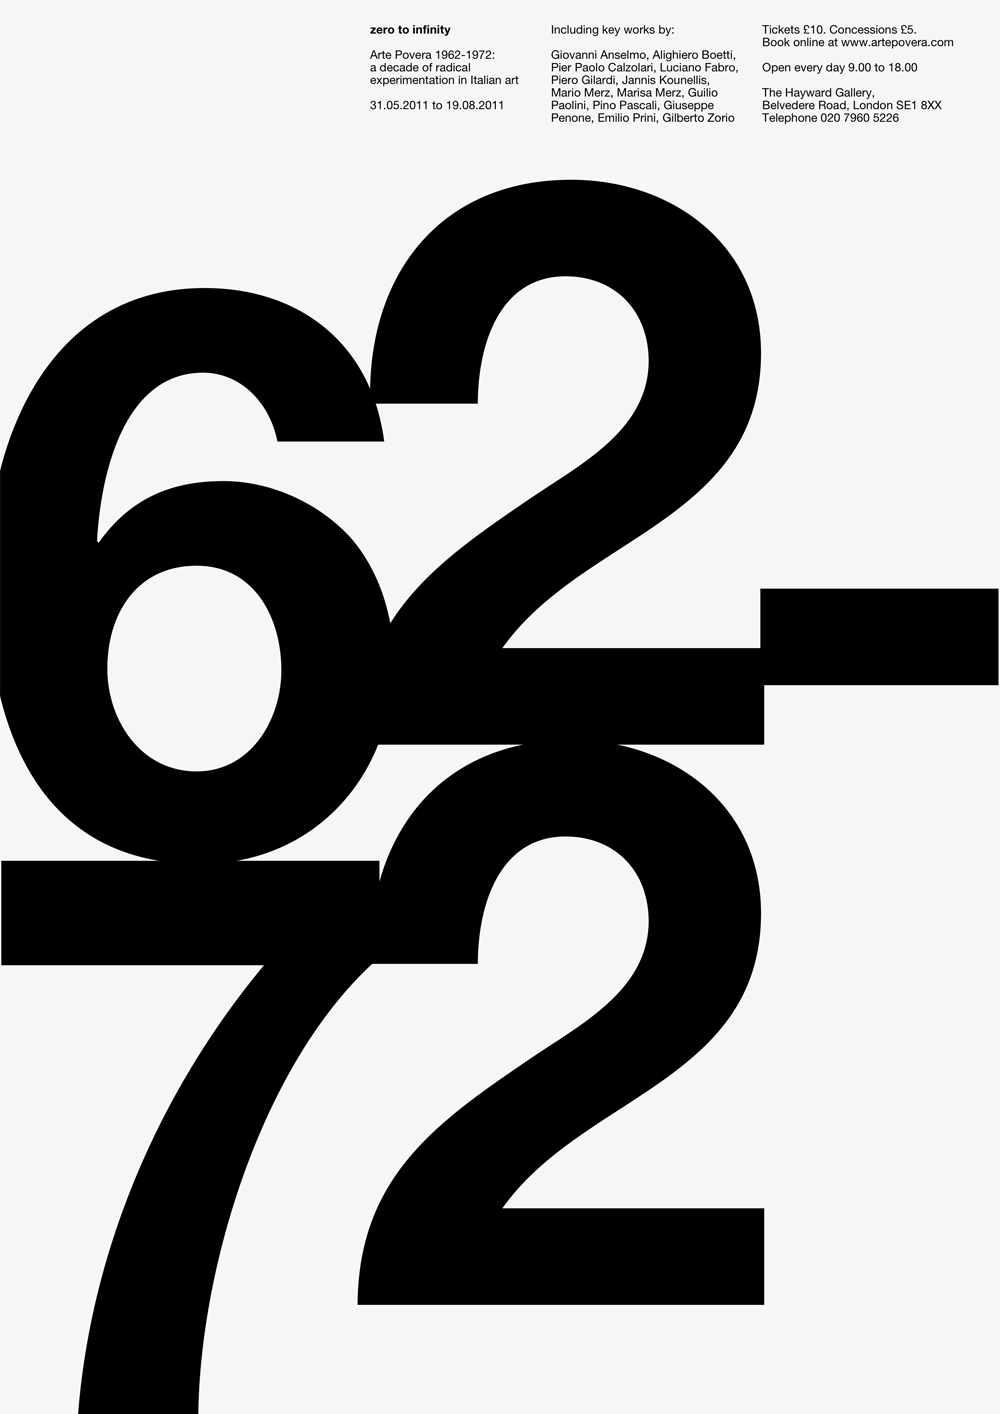 Poster design hierarchy - These Are Revised Versions Of The Typographic Hierarchy Workshop Poster General Feedback Is That The Bouncing Numerals Version Reversed Out Of Black Is